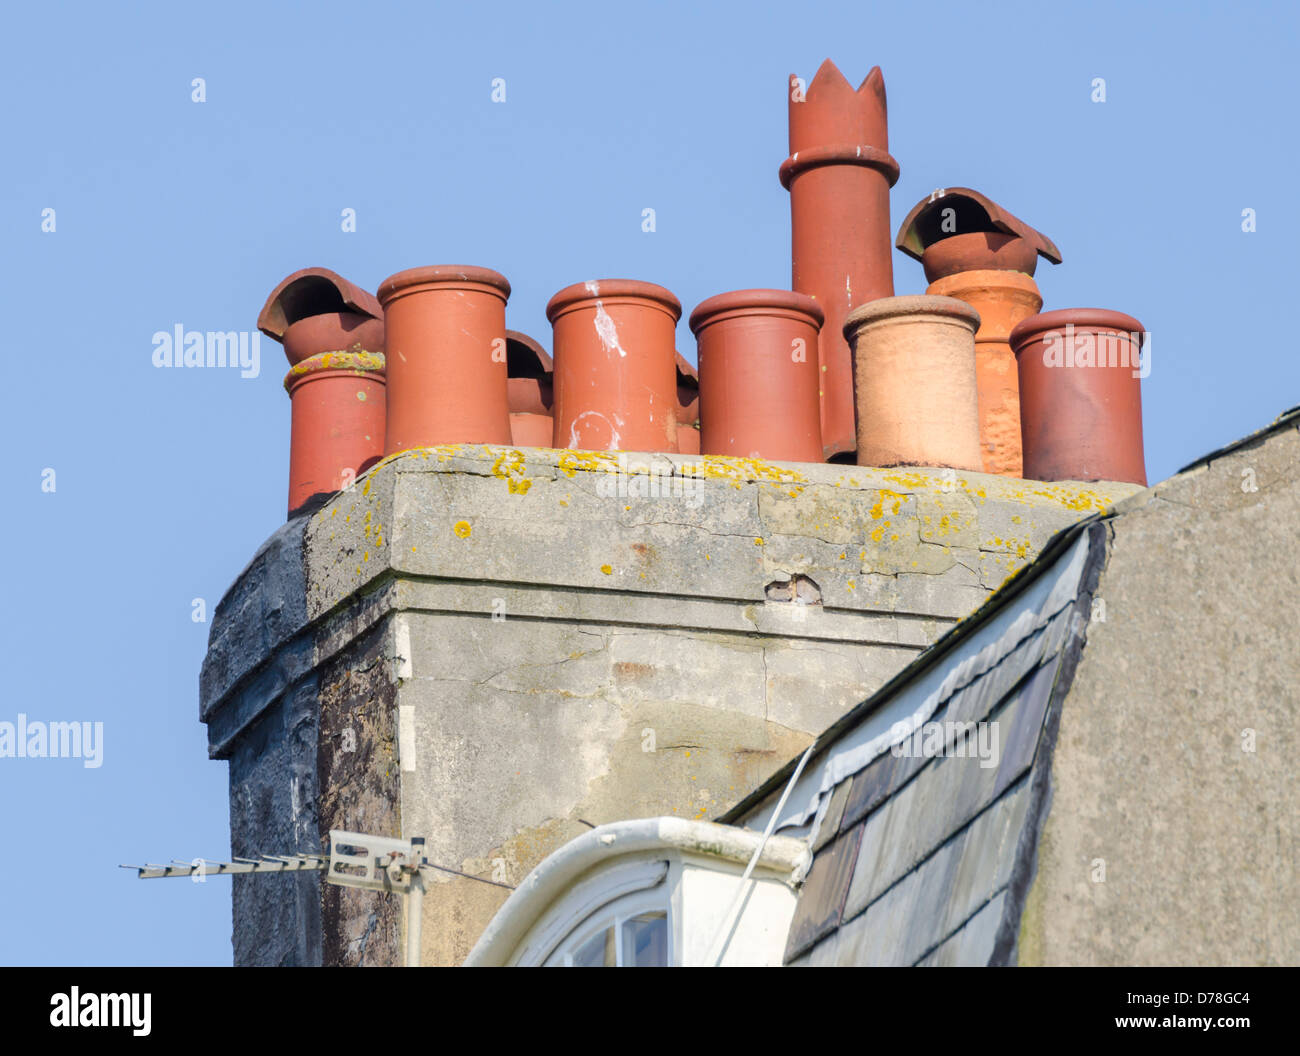 Chimney with several different old style chimney pots protruding. - Stock Image